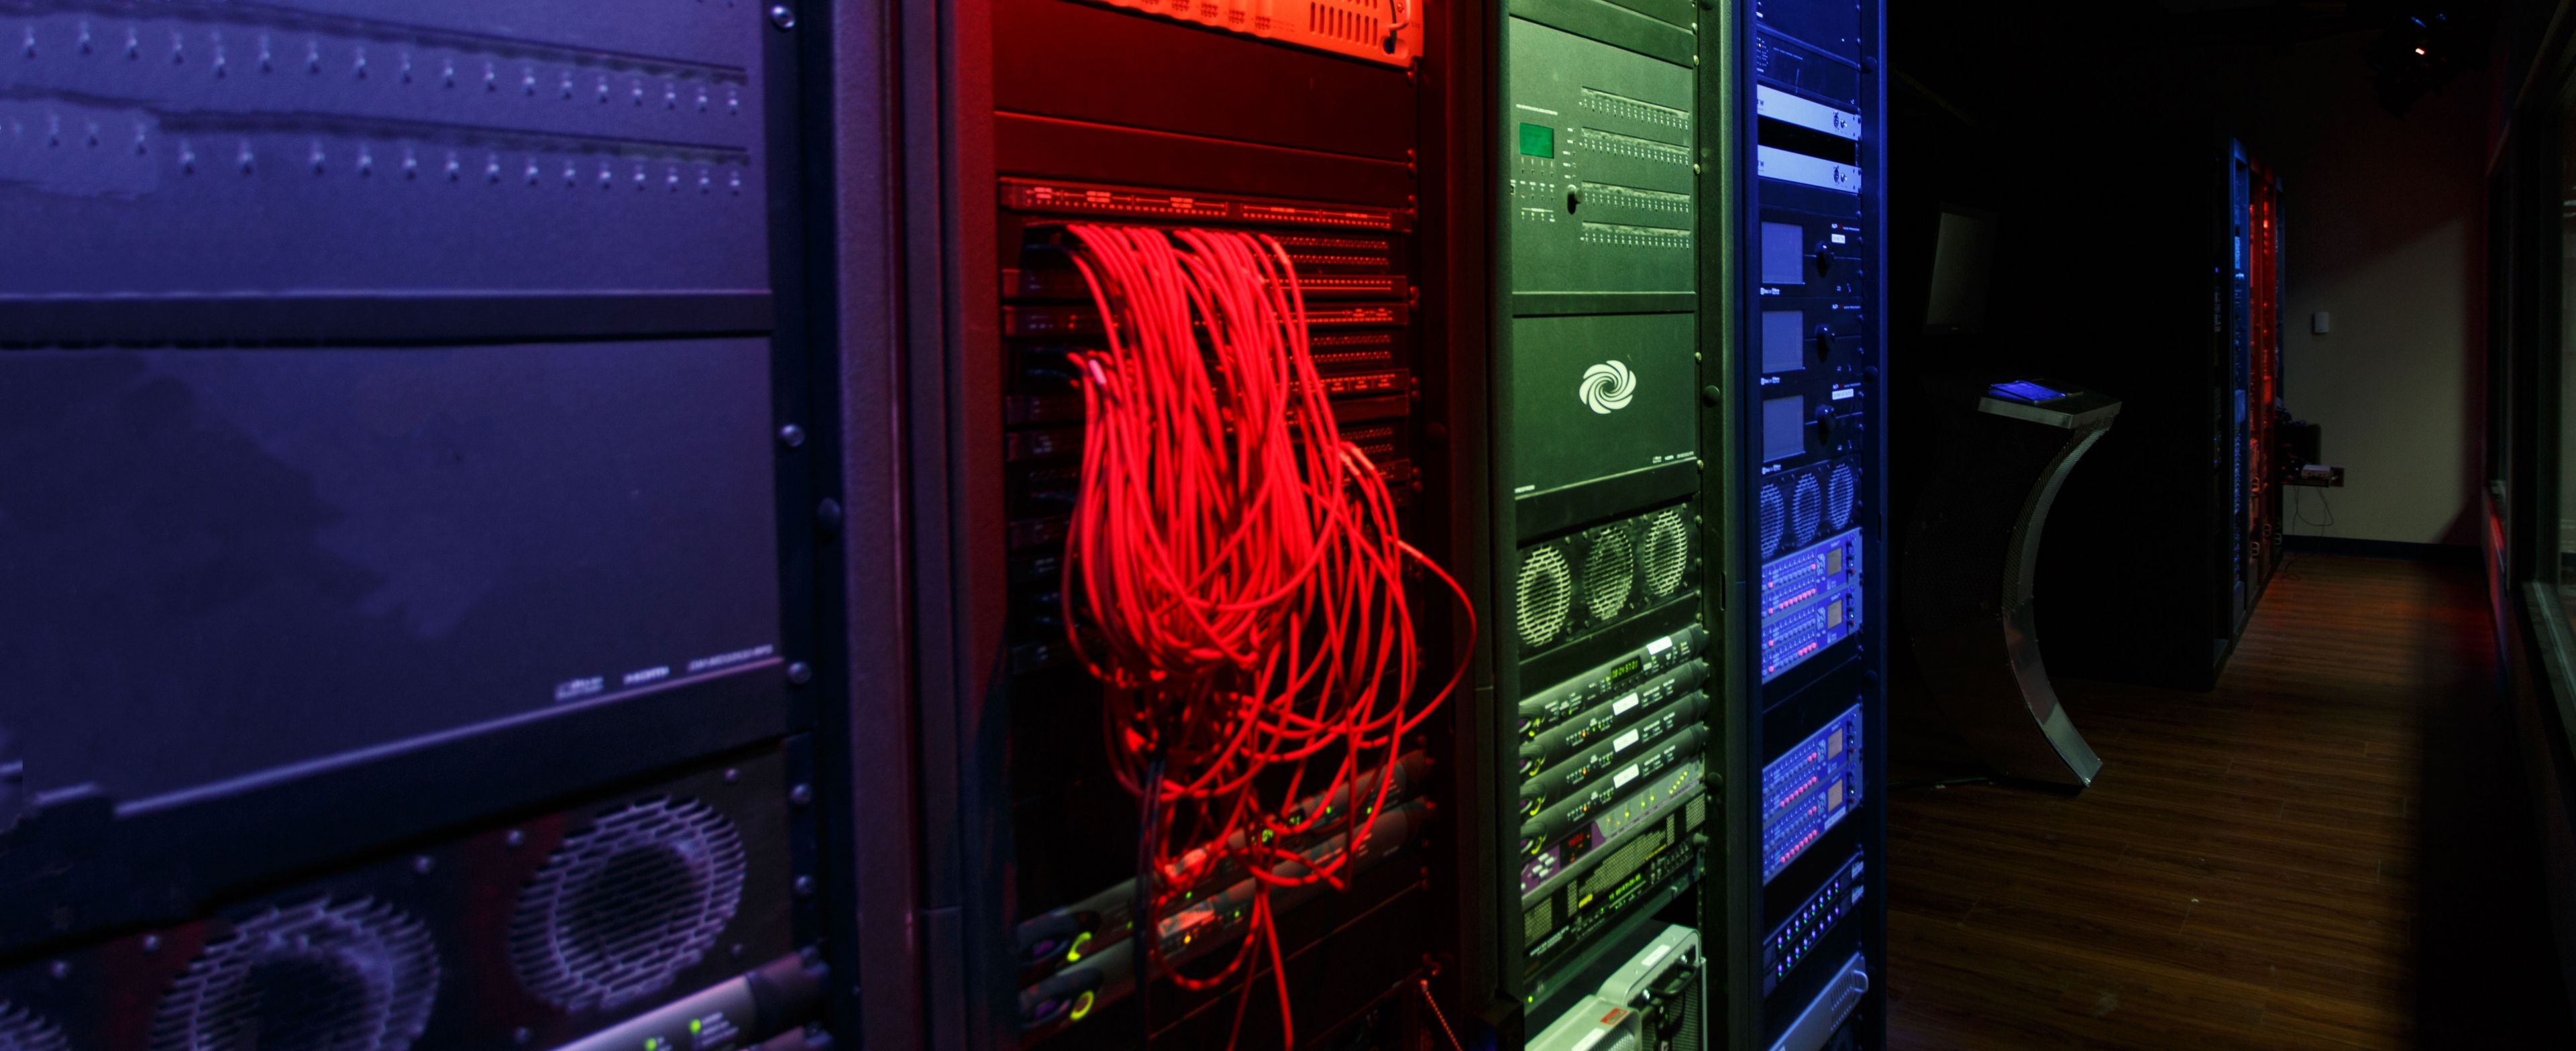 Bachelor Of Science In Information Technology – Data Networking And Security Degree Program